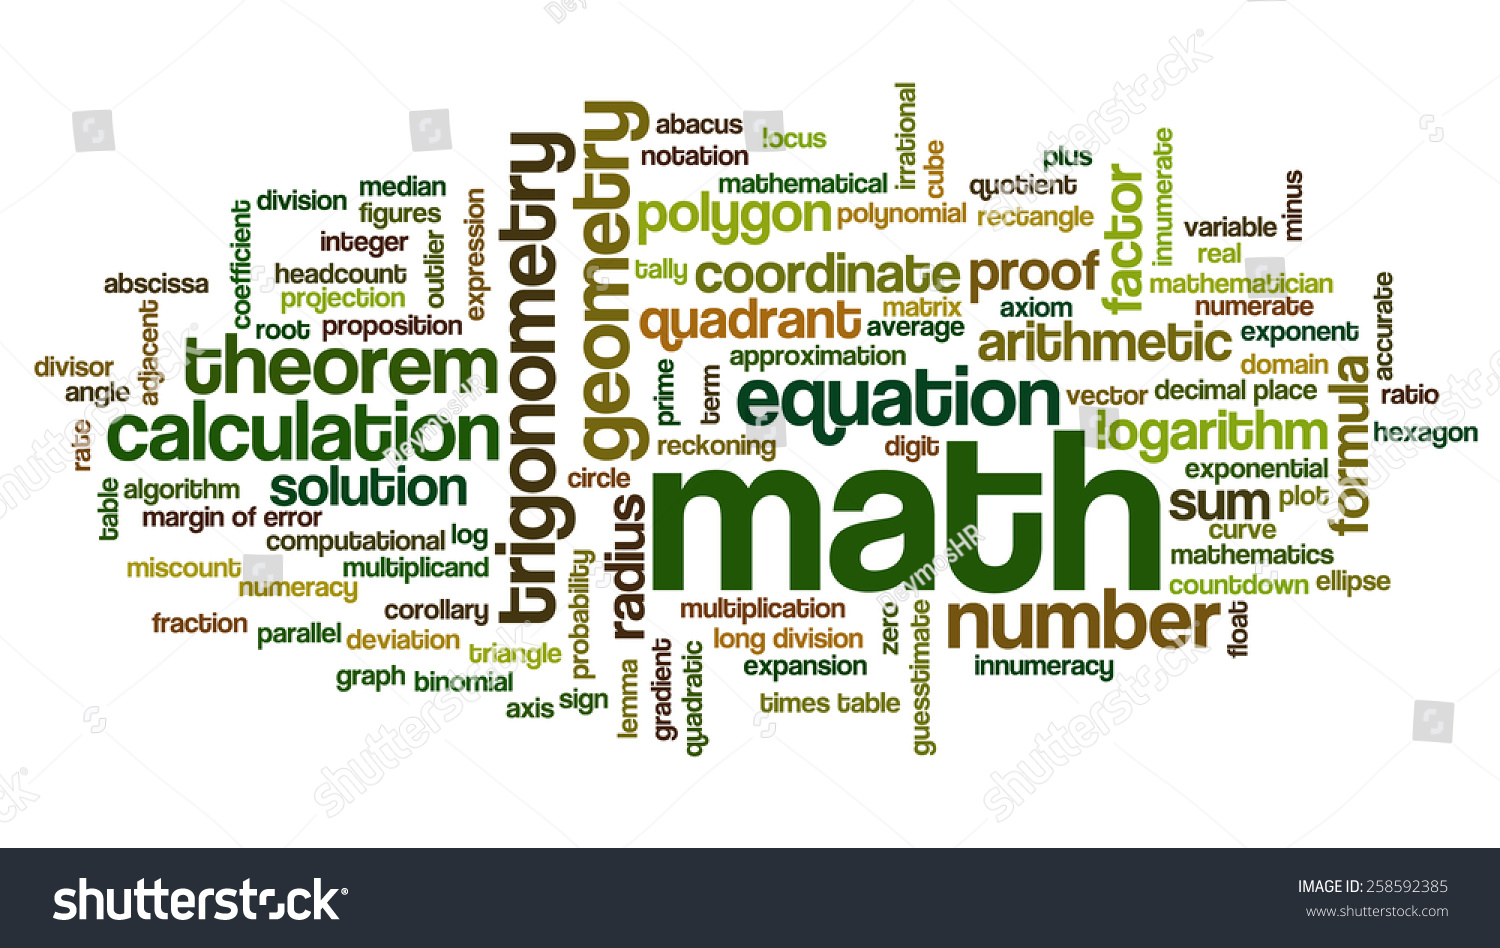 mathematical terminology with pictures Mathematics glossary » glossary print this page addition and subtraction within 5, 10, 20, 100, or 1000 addition or subtraction of two whole numbers with whole number answers, and with sum or minuend in the range 0-5, 0-10, 0-20, or 0-100, respectively.